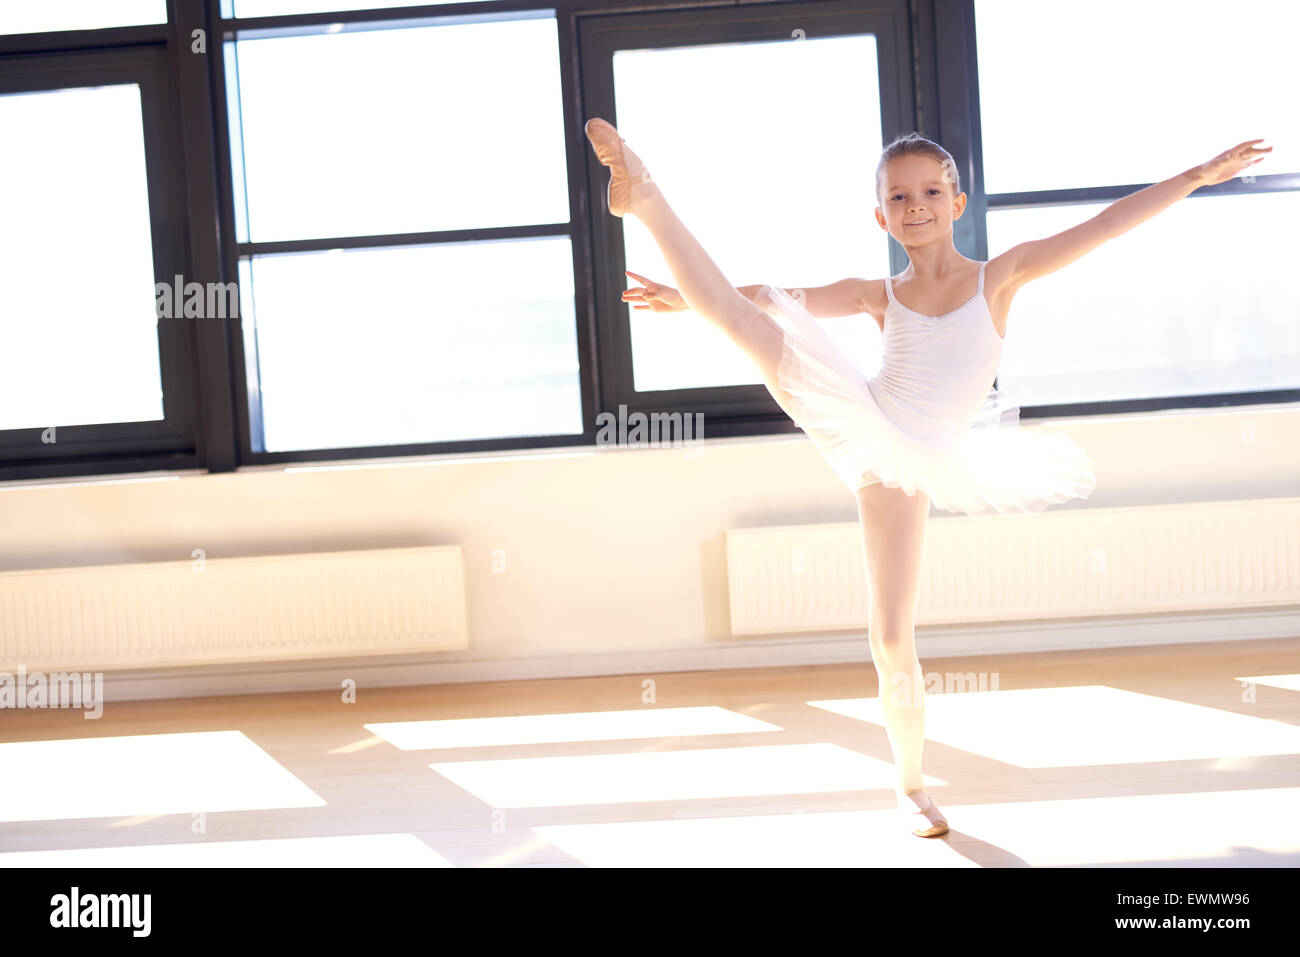 Agile pretty young ballerina practicing her positions in a graceful pose in front of bright windows at a ballet - Stock Image